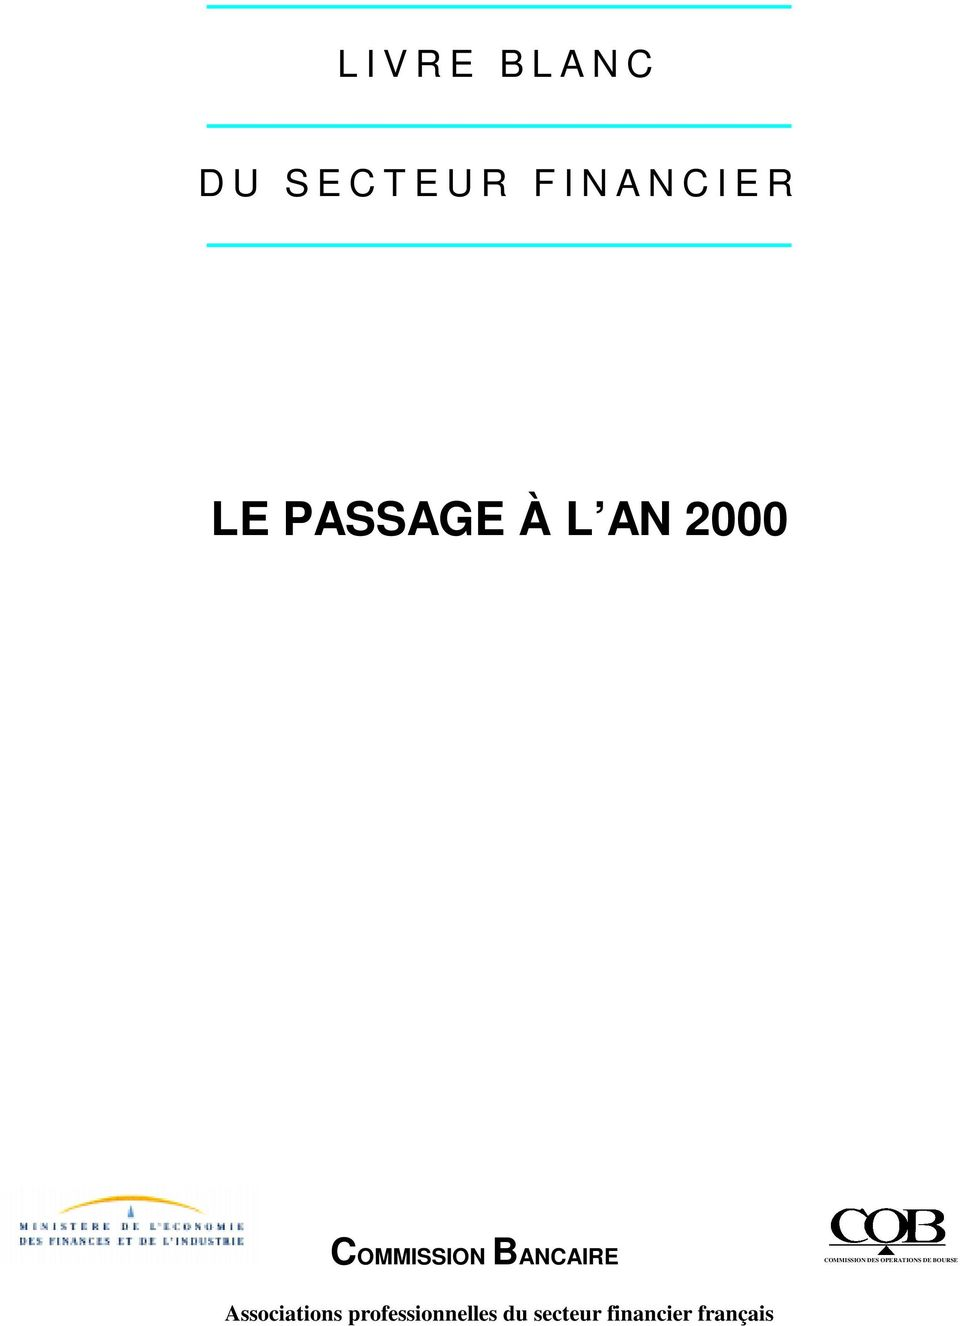 COMMISSION DES OPERATIONS DE BOURSE